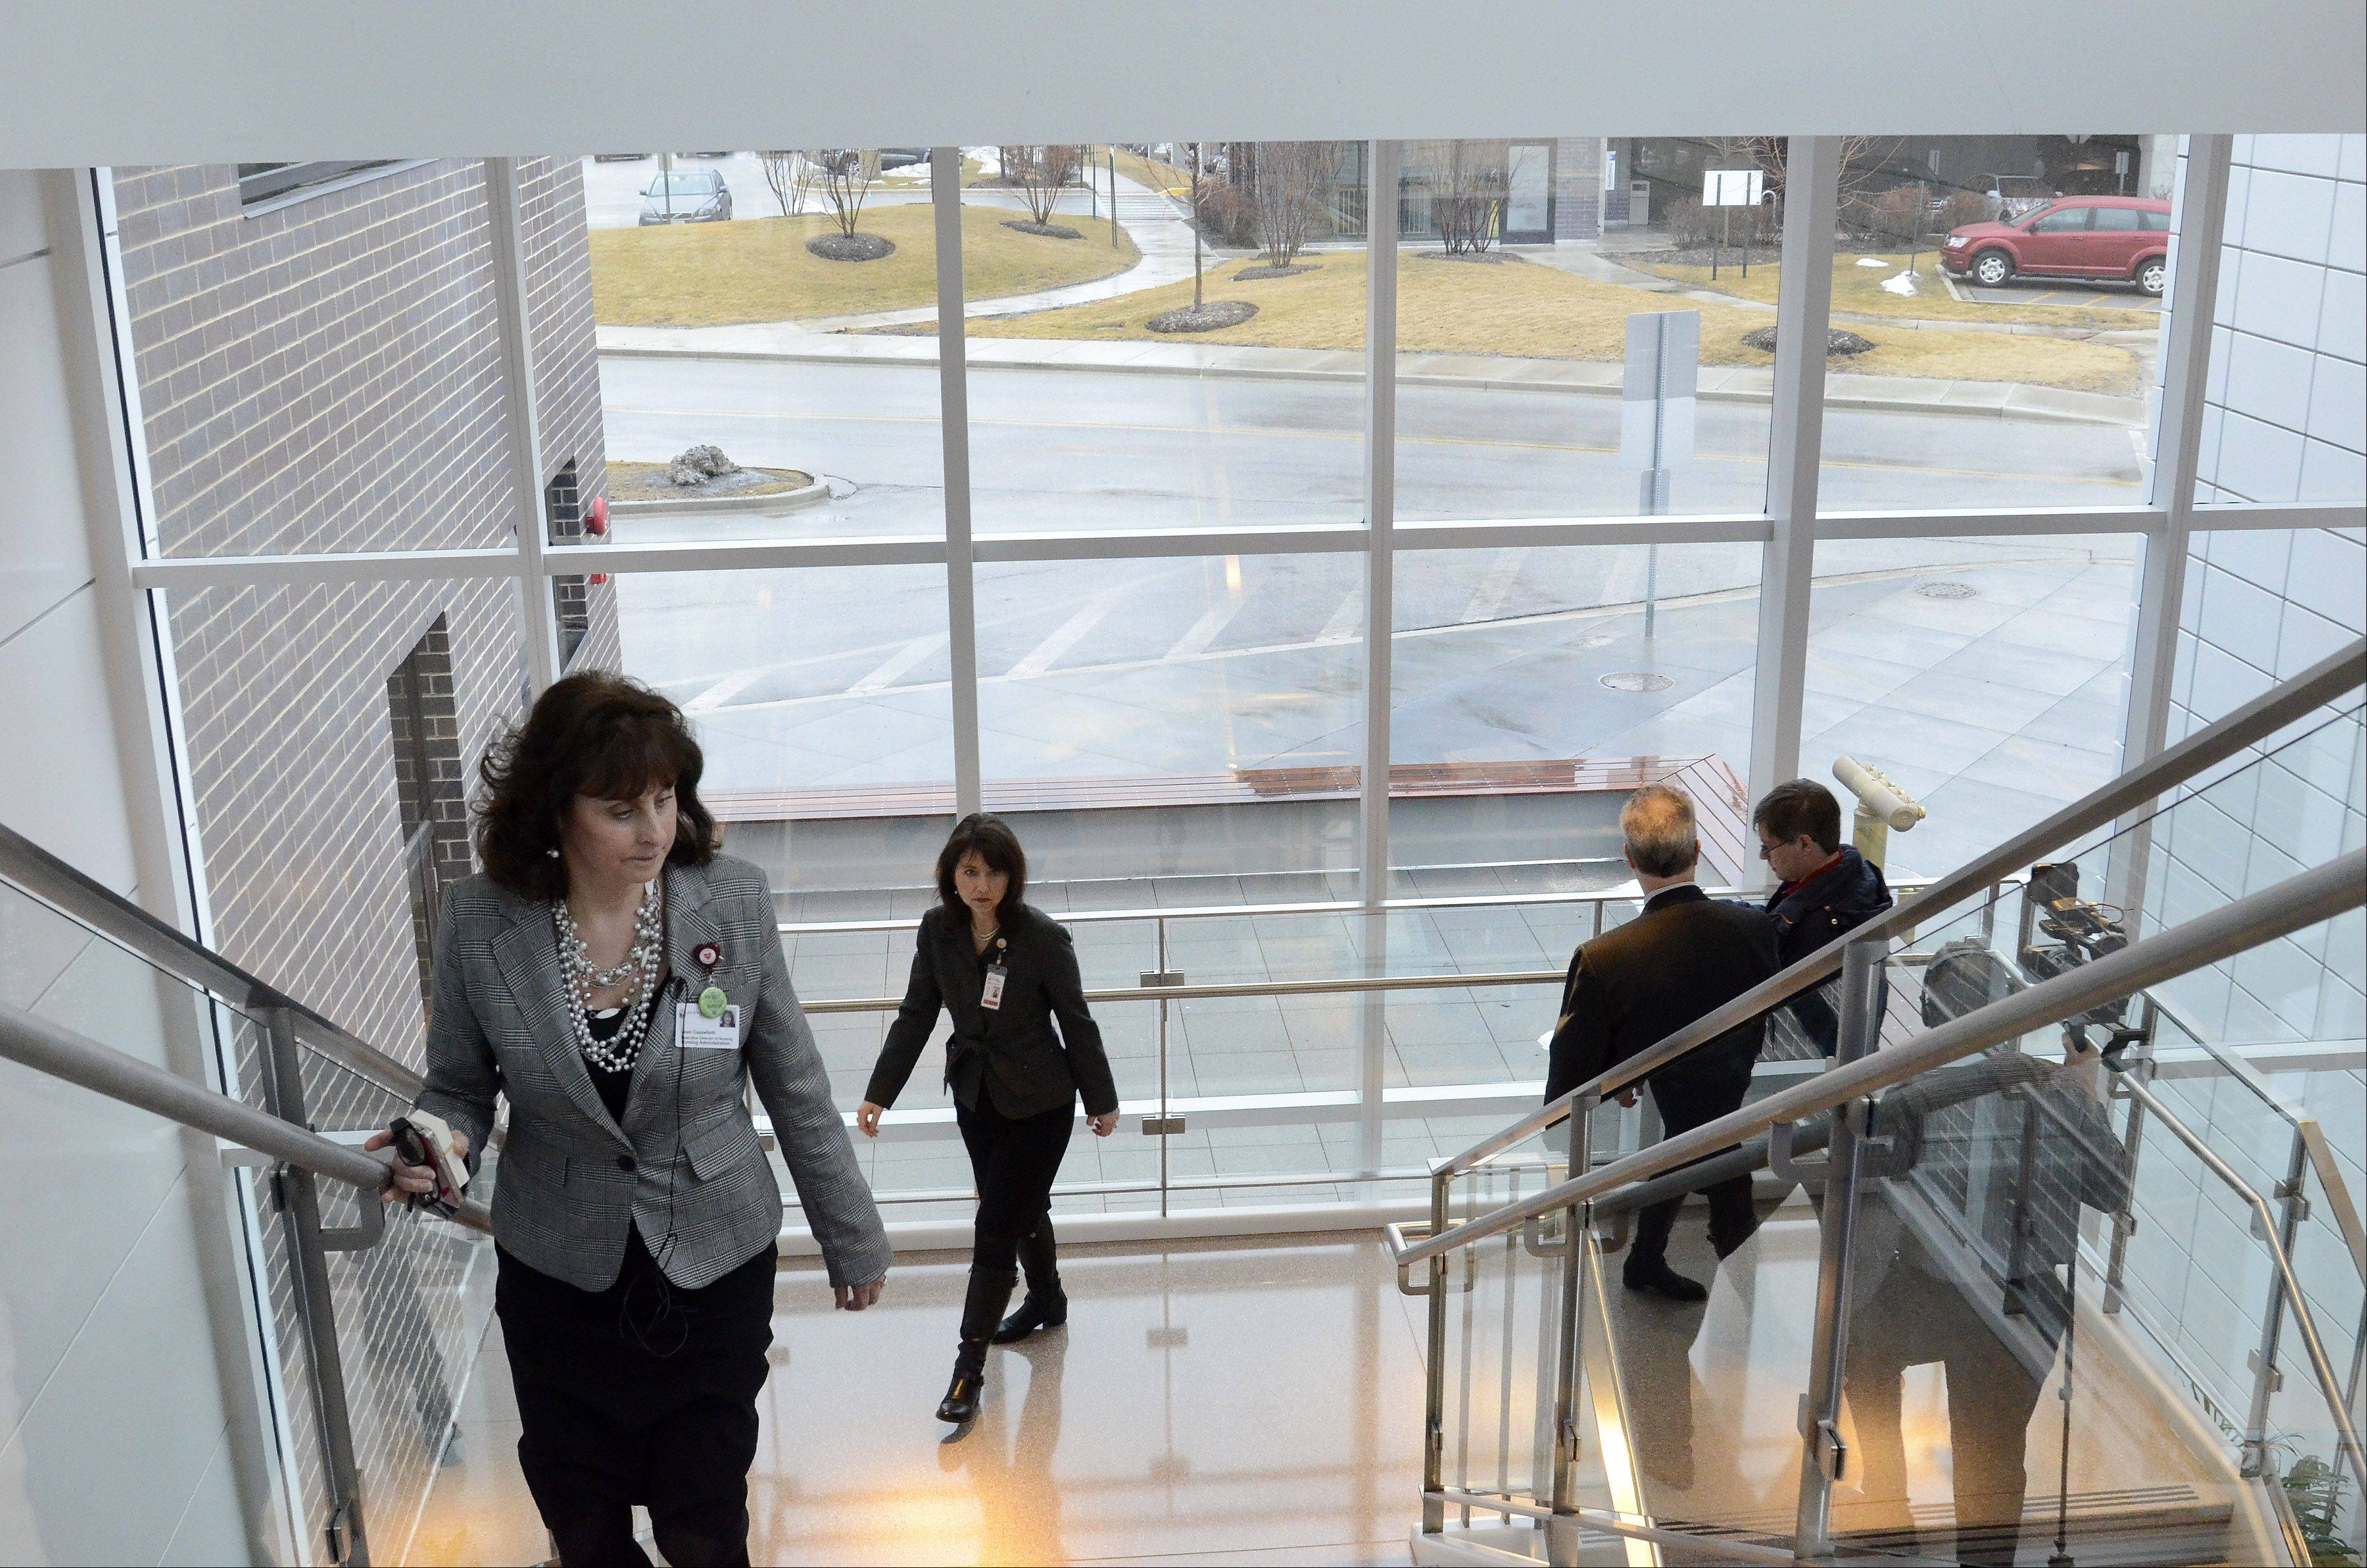 Executive Director of Nursing Joan Cappelletti leads a tour of the new hospital.